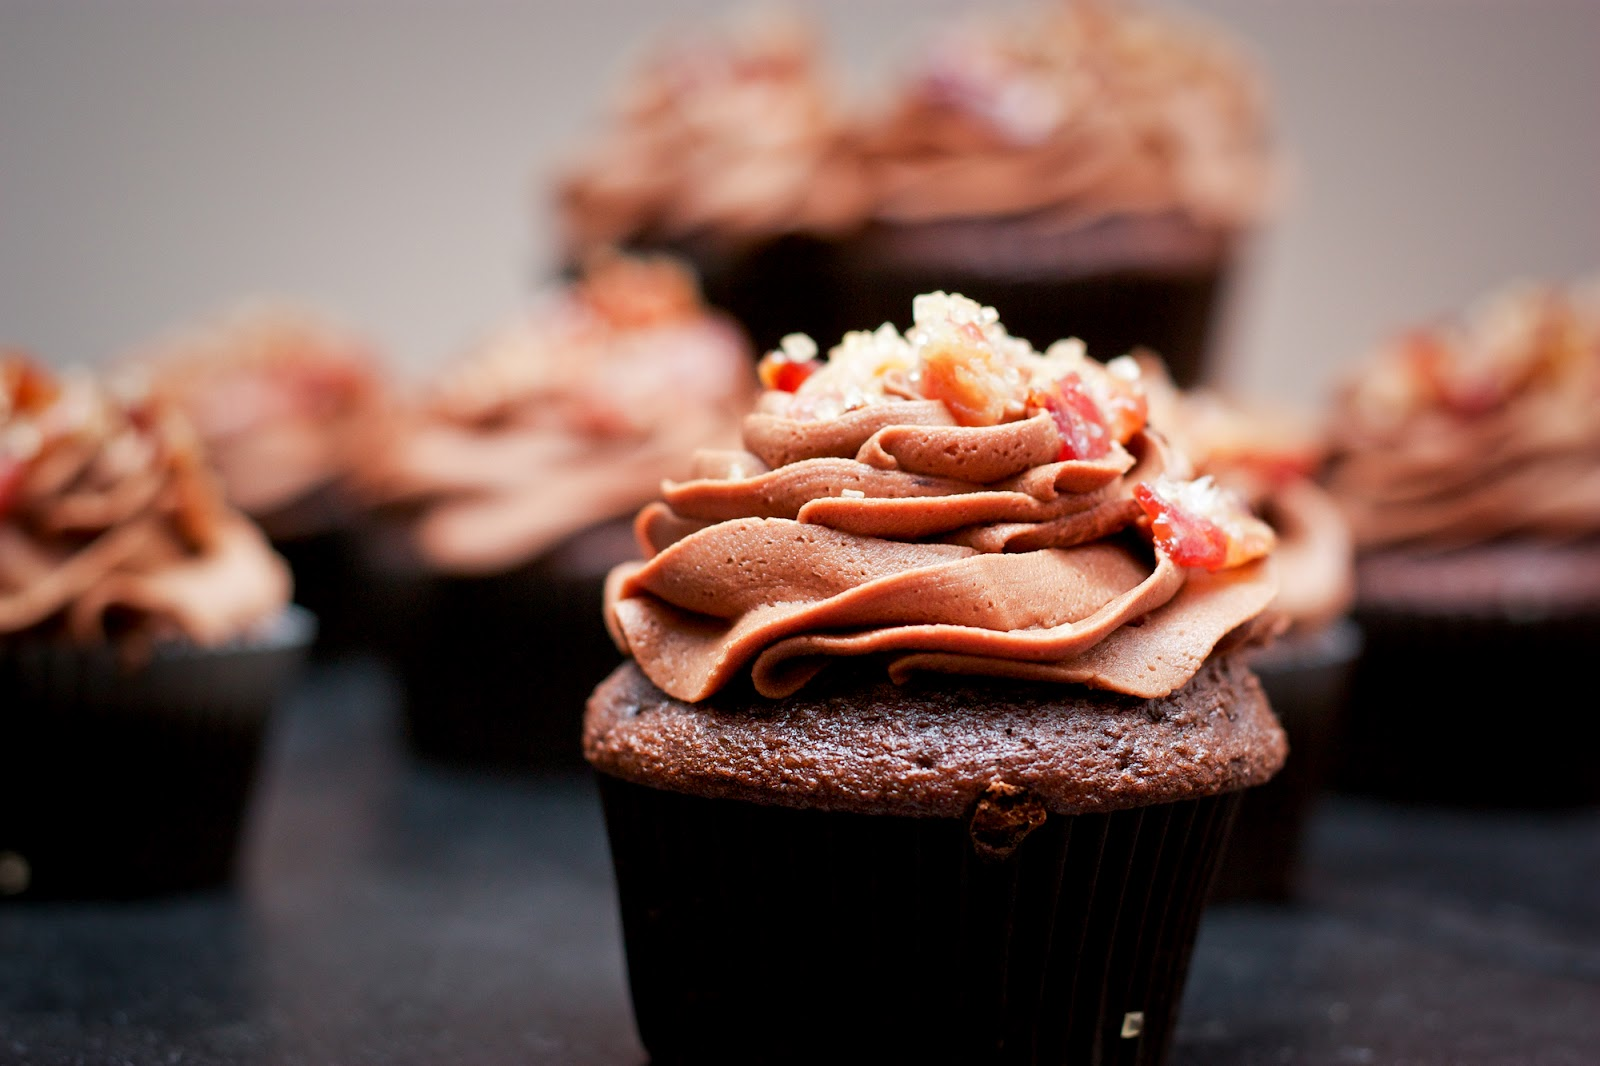 ... Freed: To Lose Weight: Bacon And Chocolate Cake Breakfast Diet